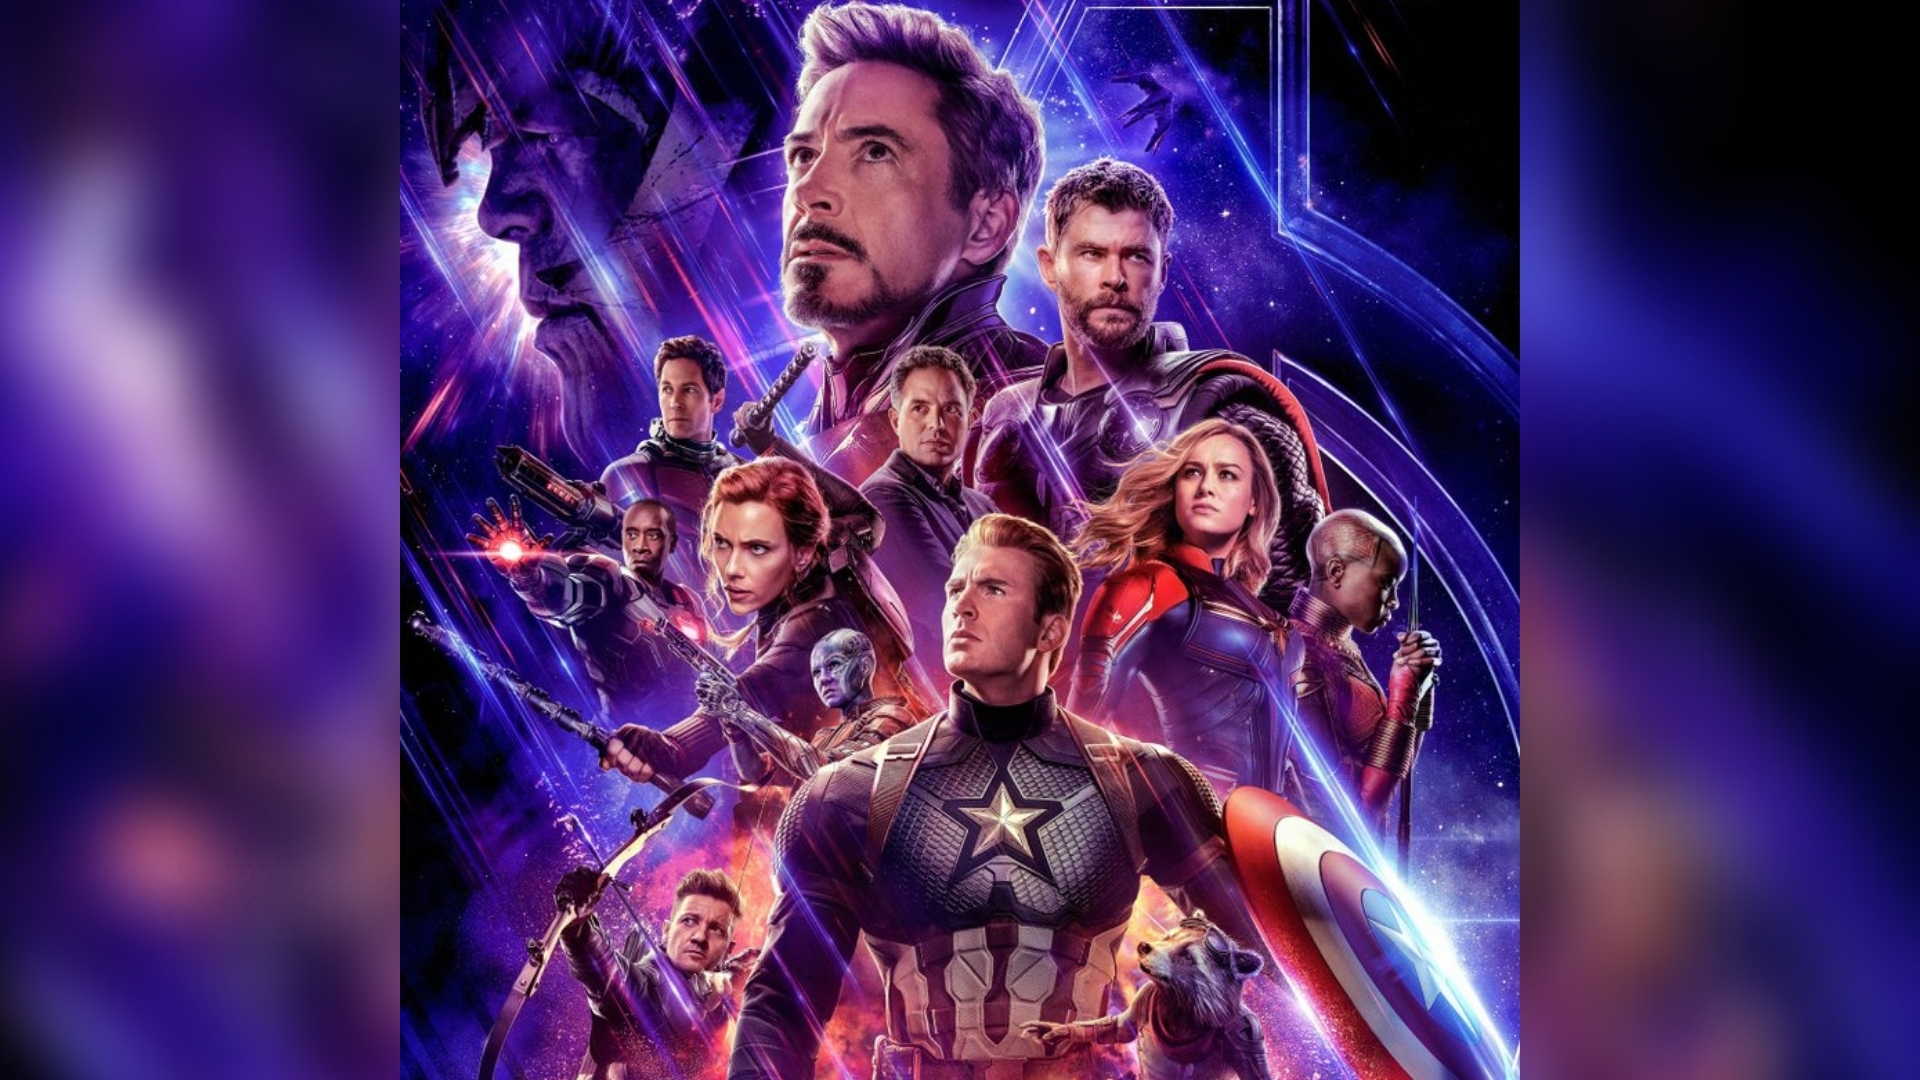 'Avengers: Endgame' Opens Bigger Than Any Hollywood Film in China